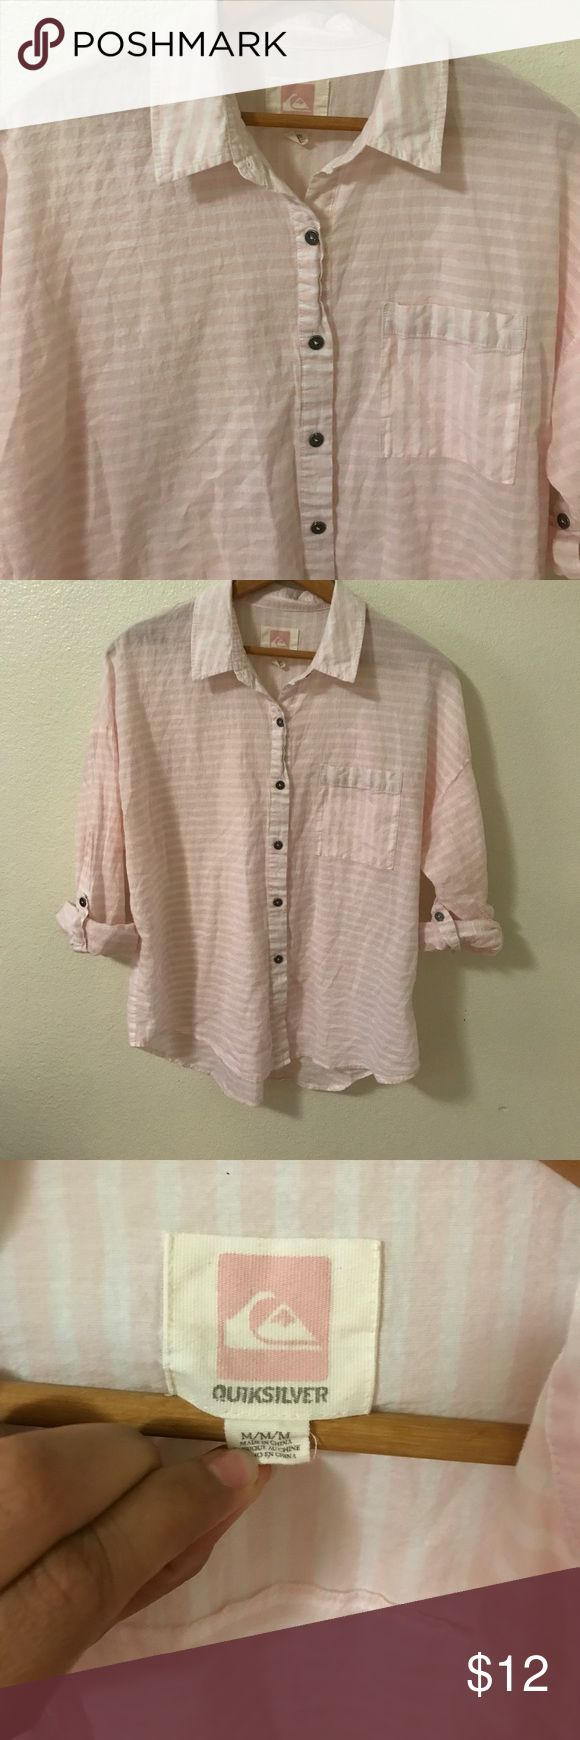 Pink and white 100% cotton Quicksilver woman's top Pink and White striped Woman's  top size M by Quicksilver . 100% cotton. Approximately 23 1/2 inches long and bust is approximately 23 inches . Quiksilver Tops Button Down Shirts